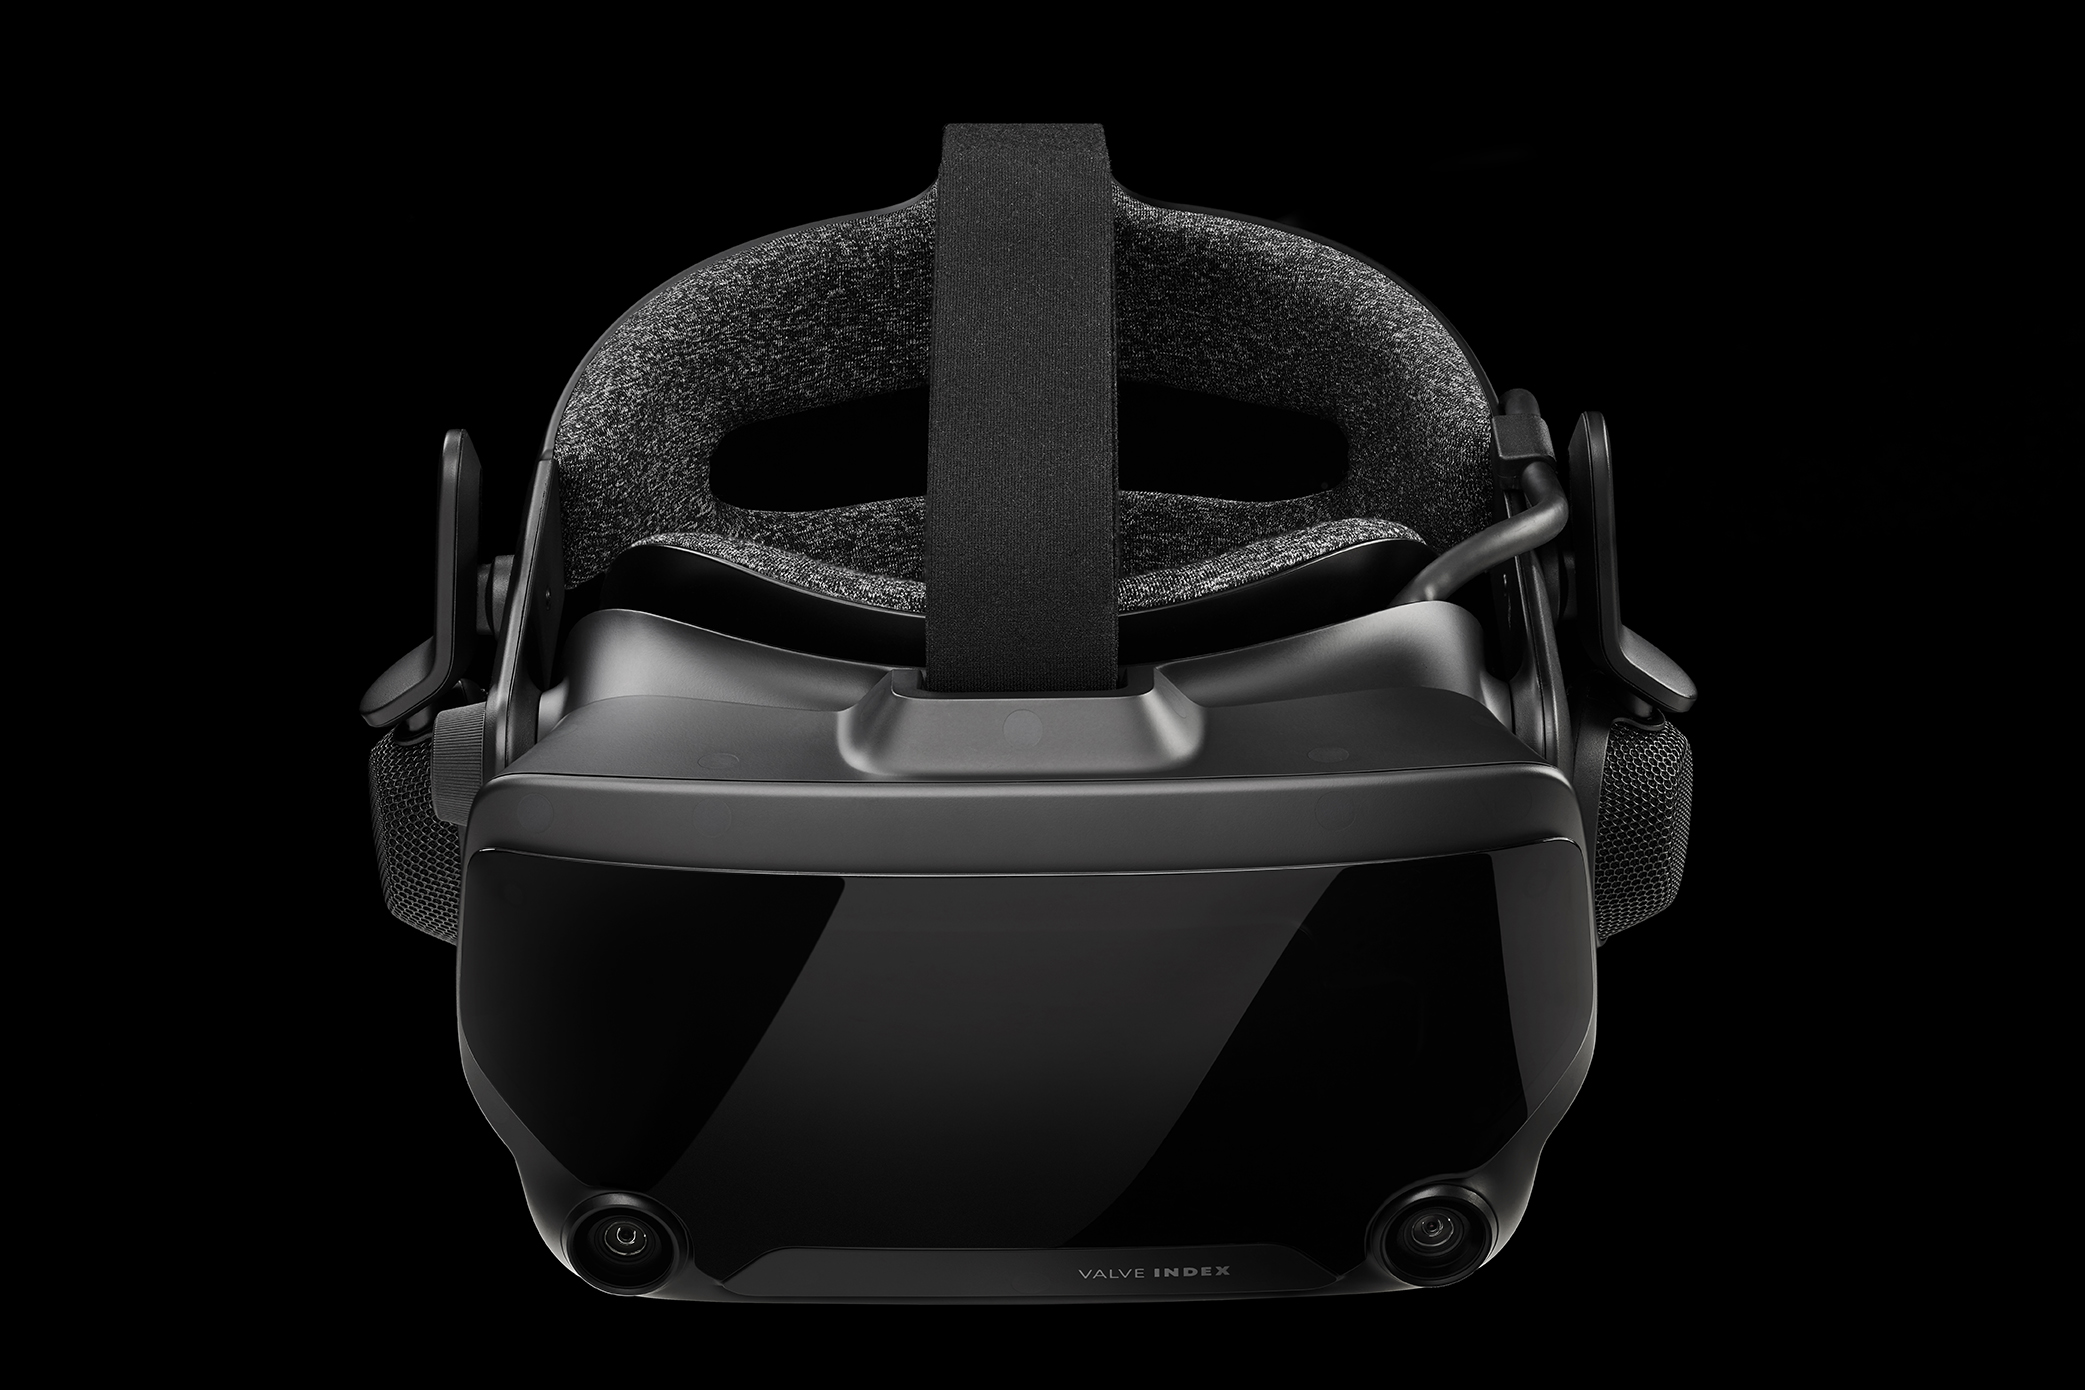 Valve Index HMD Front Above Reflection